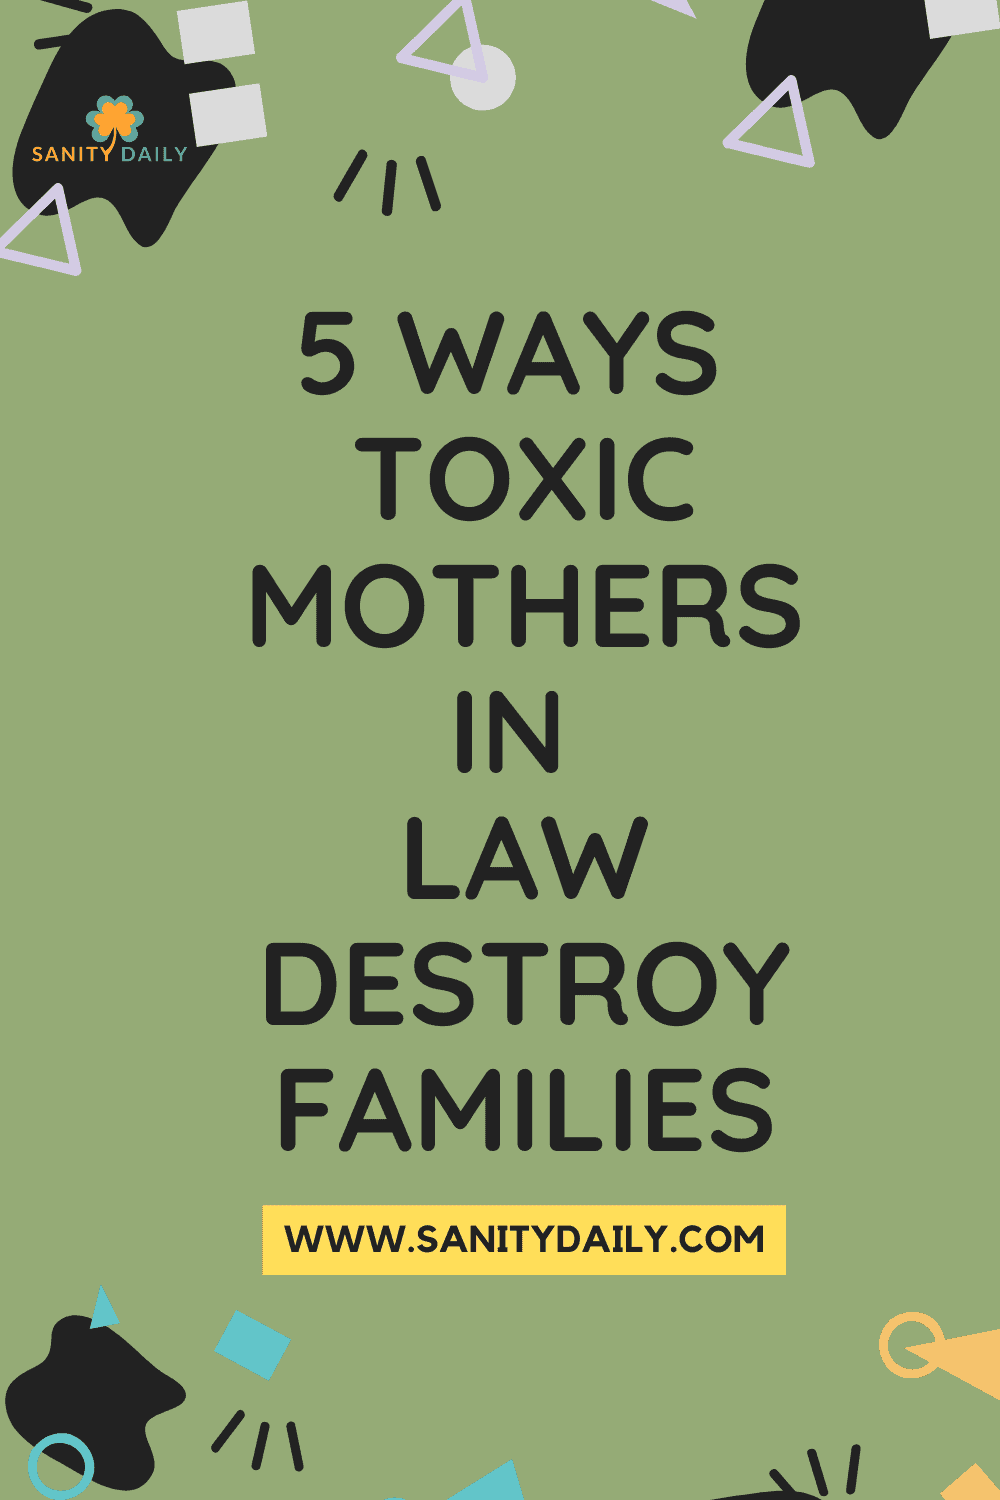 How Toxic Mothers in law Destroy Families